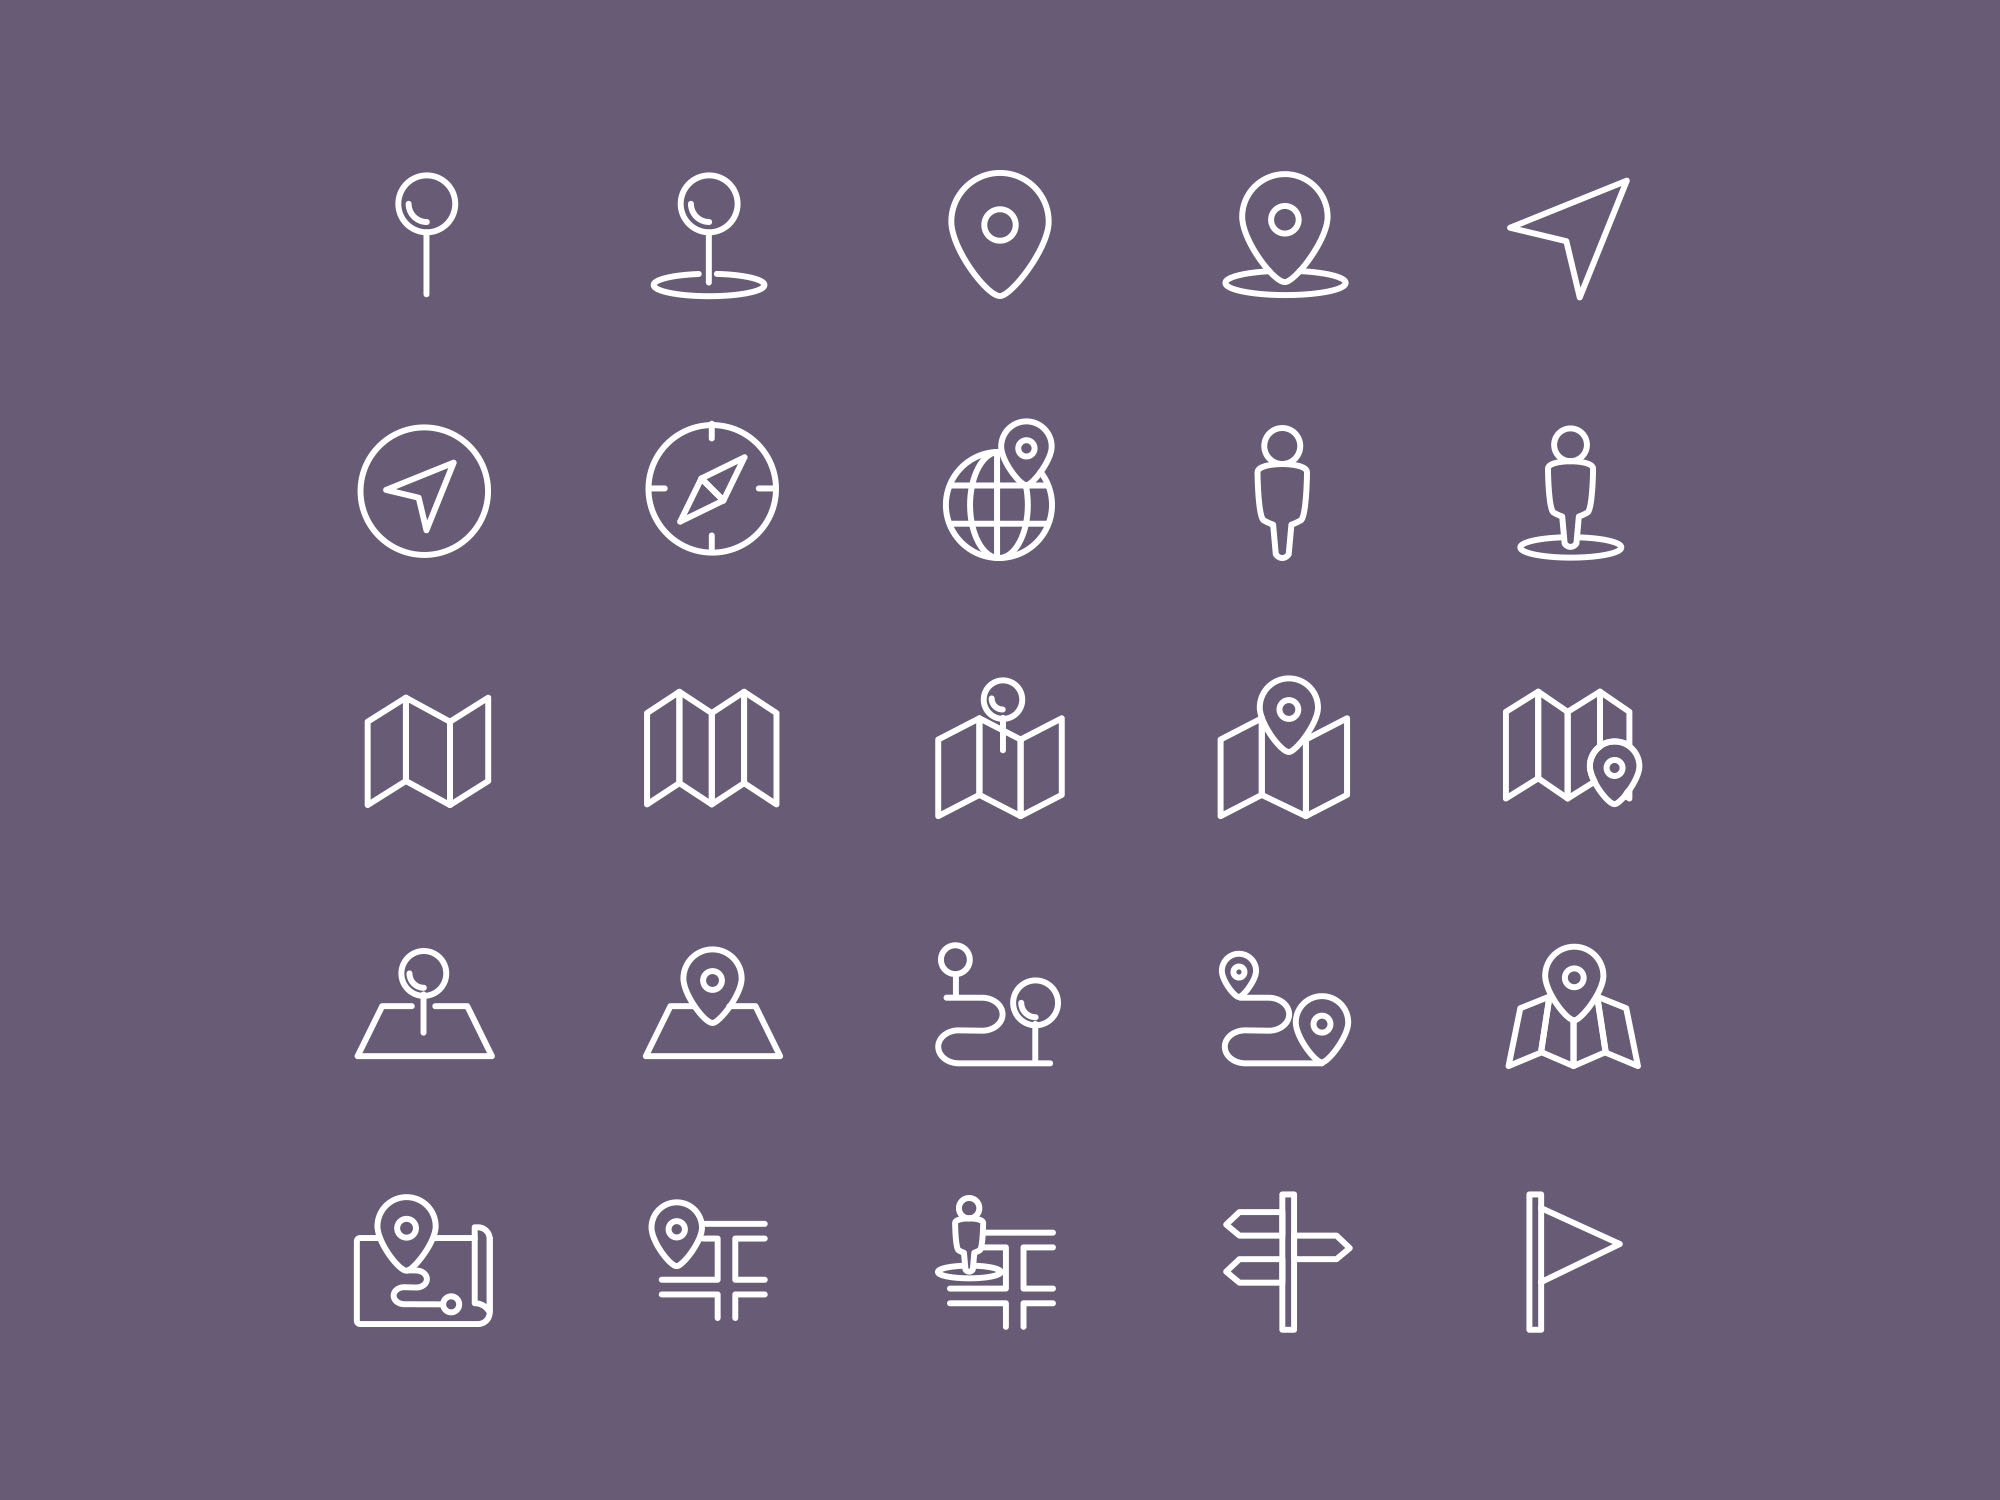 Map & Location Icons